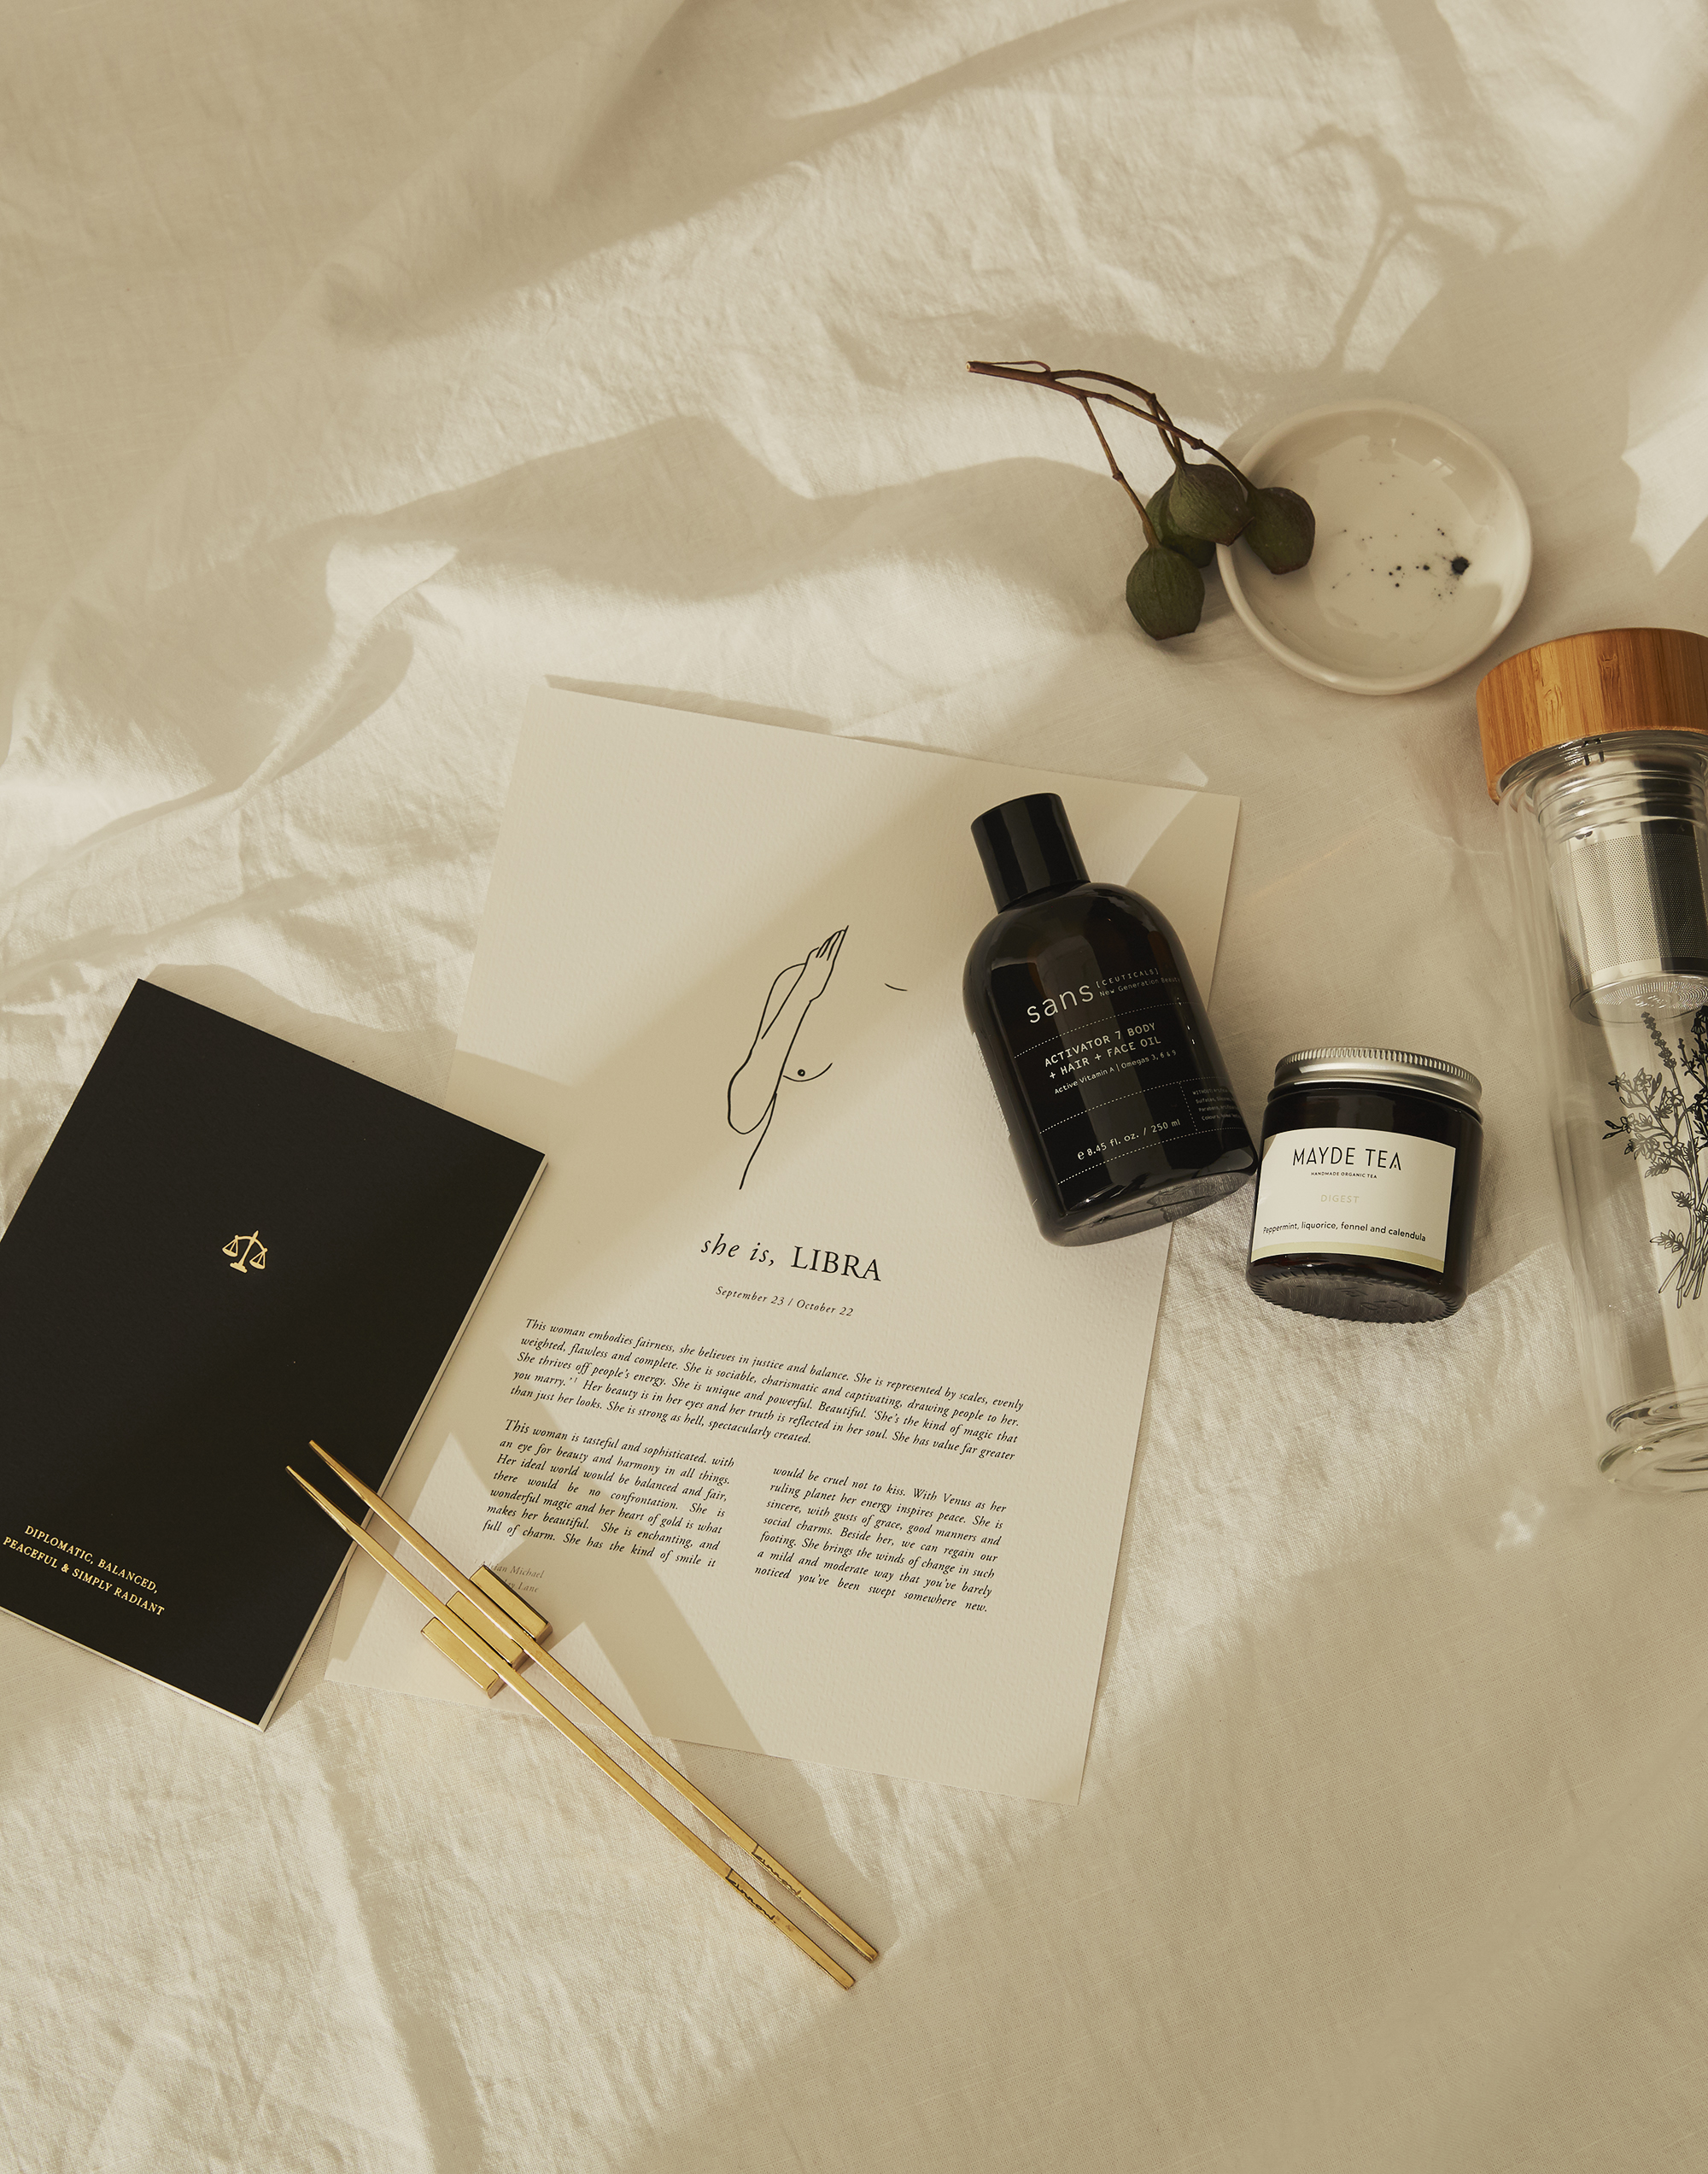 Pictured from left to right are: 'Zodiac Collection' notebook from An Organised Life, 'Maibashi' brass chopsticks from Kinnow Cutlery, 'The Zodiacs' prints from Sunday Lane Studio, Activator 7 Body + Hair + Face Oil from Sans Ceuticals, 'Digest ' Mayde Tea, 'Stardust' ceramics from Studio Enti and Mayde Tea tea flask.